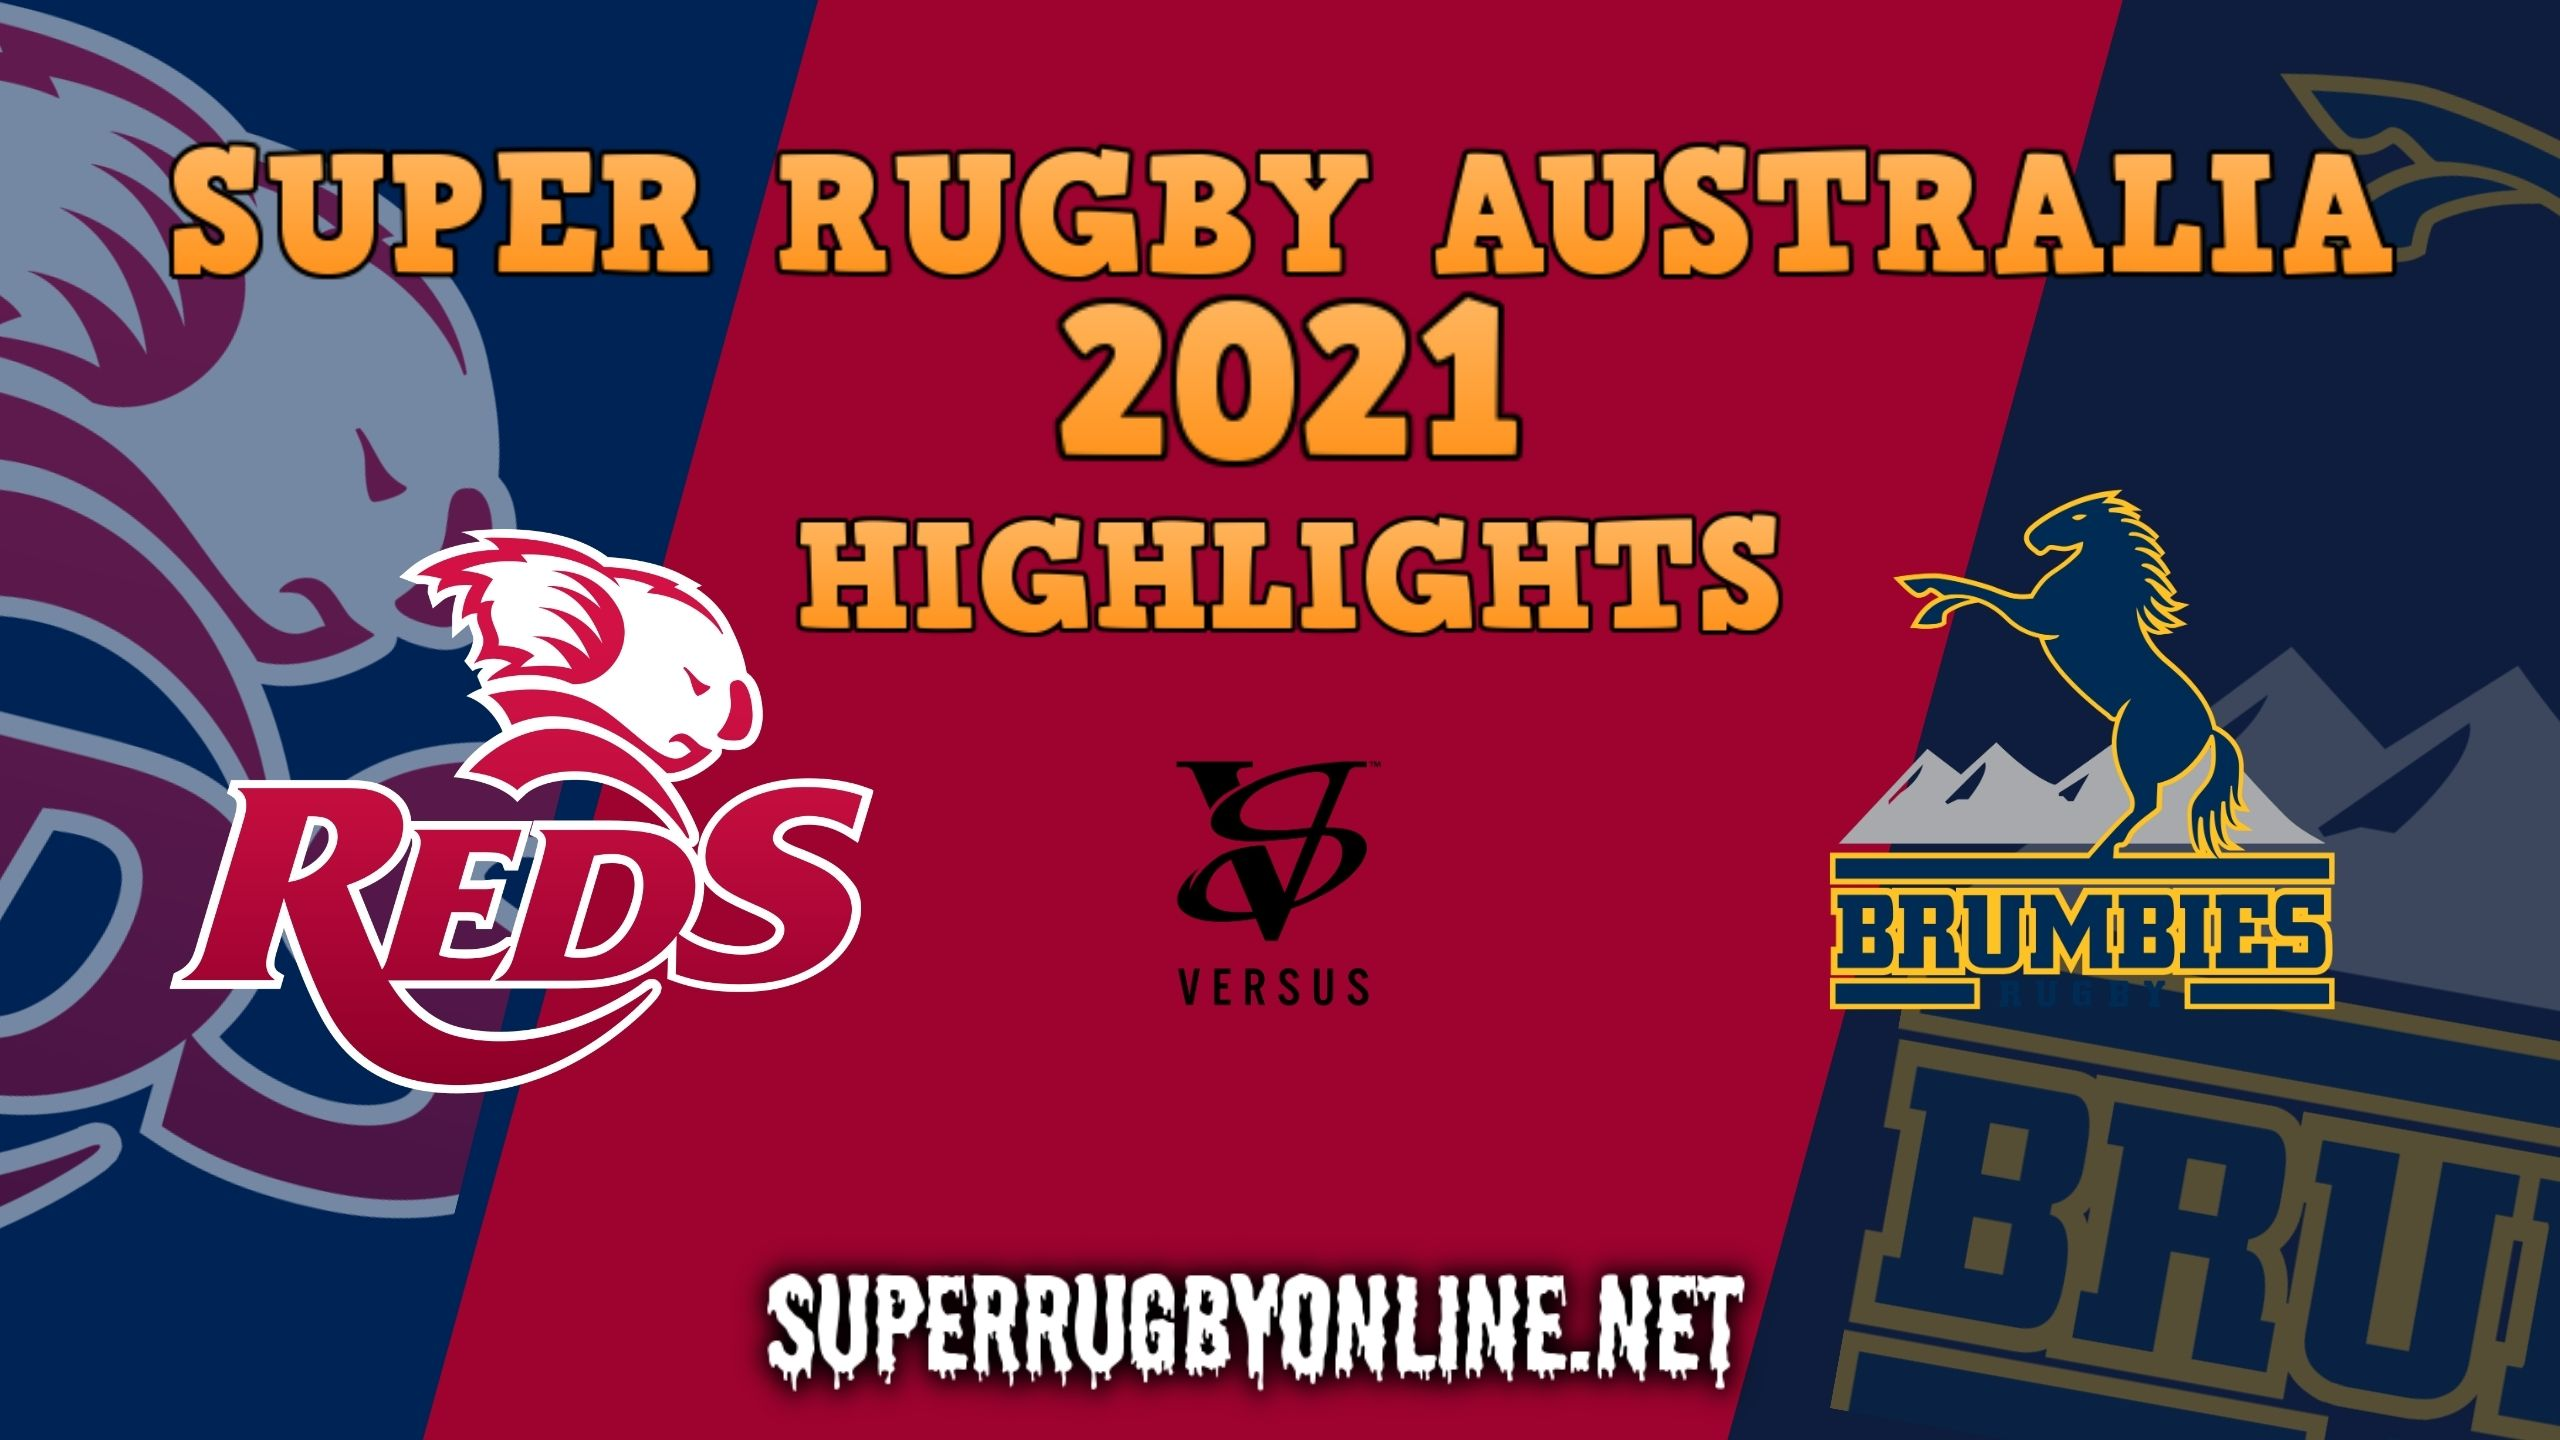 Reds Vs Brumbies Highlights 2021 Rd 8